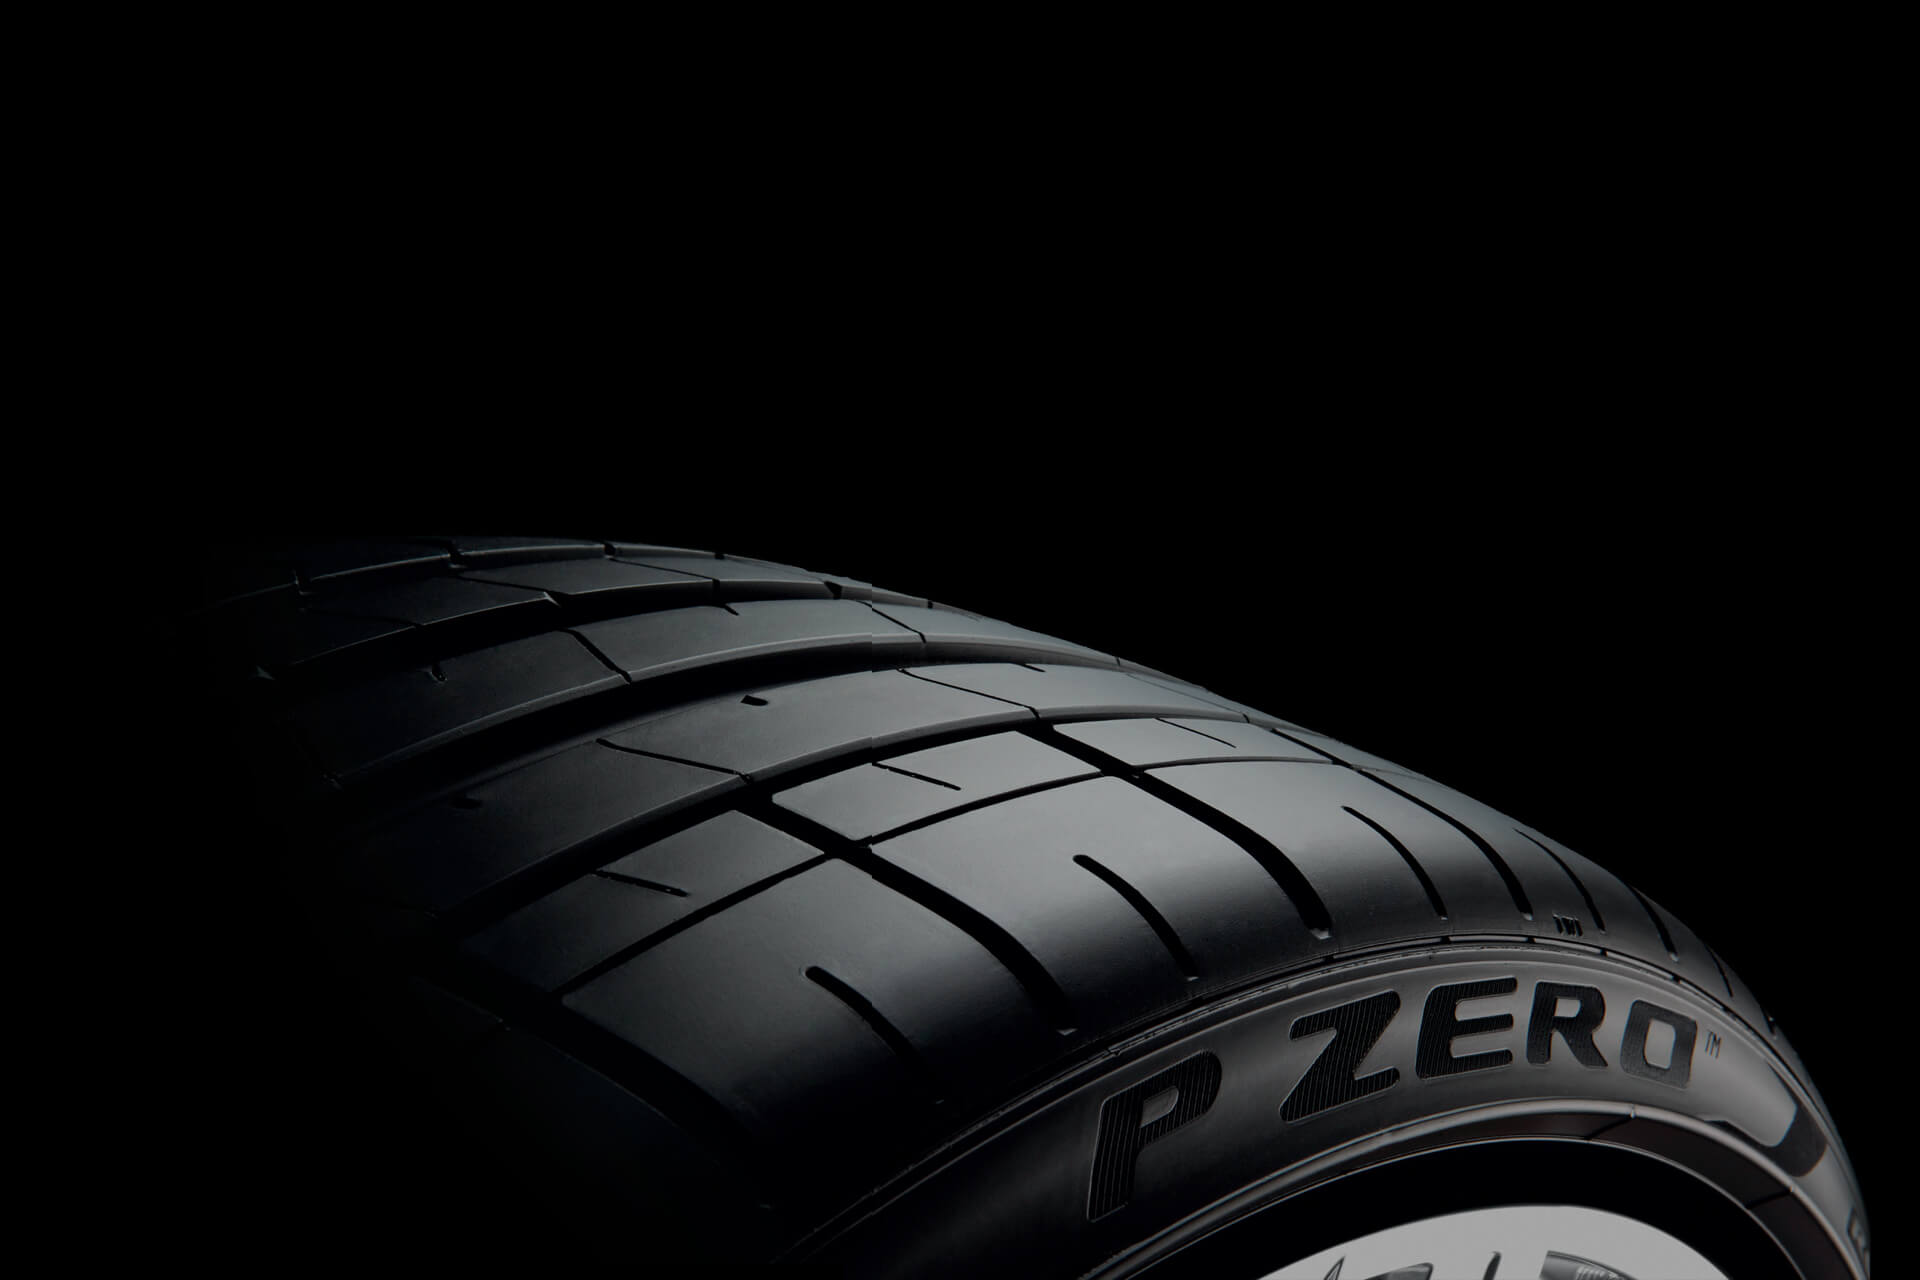 FREE PICK-UP & DELIVERY: With every set of PIRELLI tyres